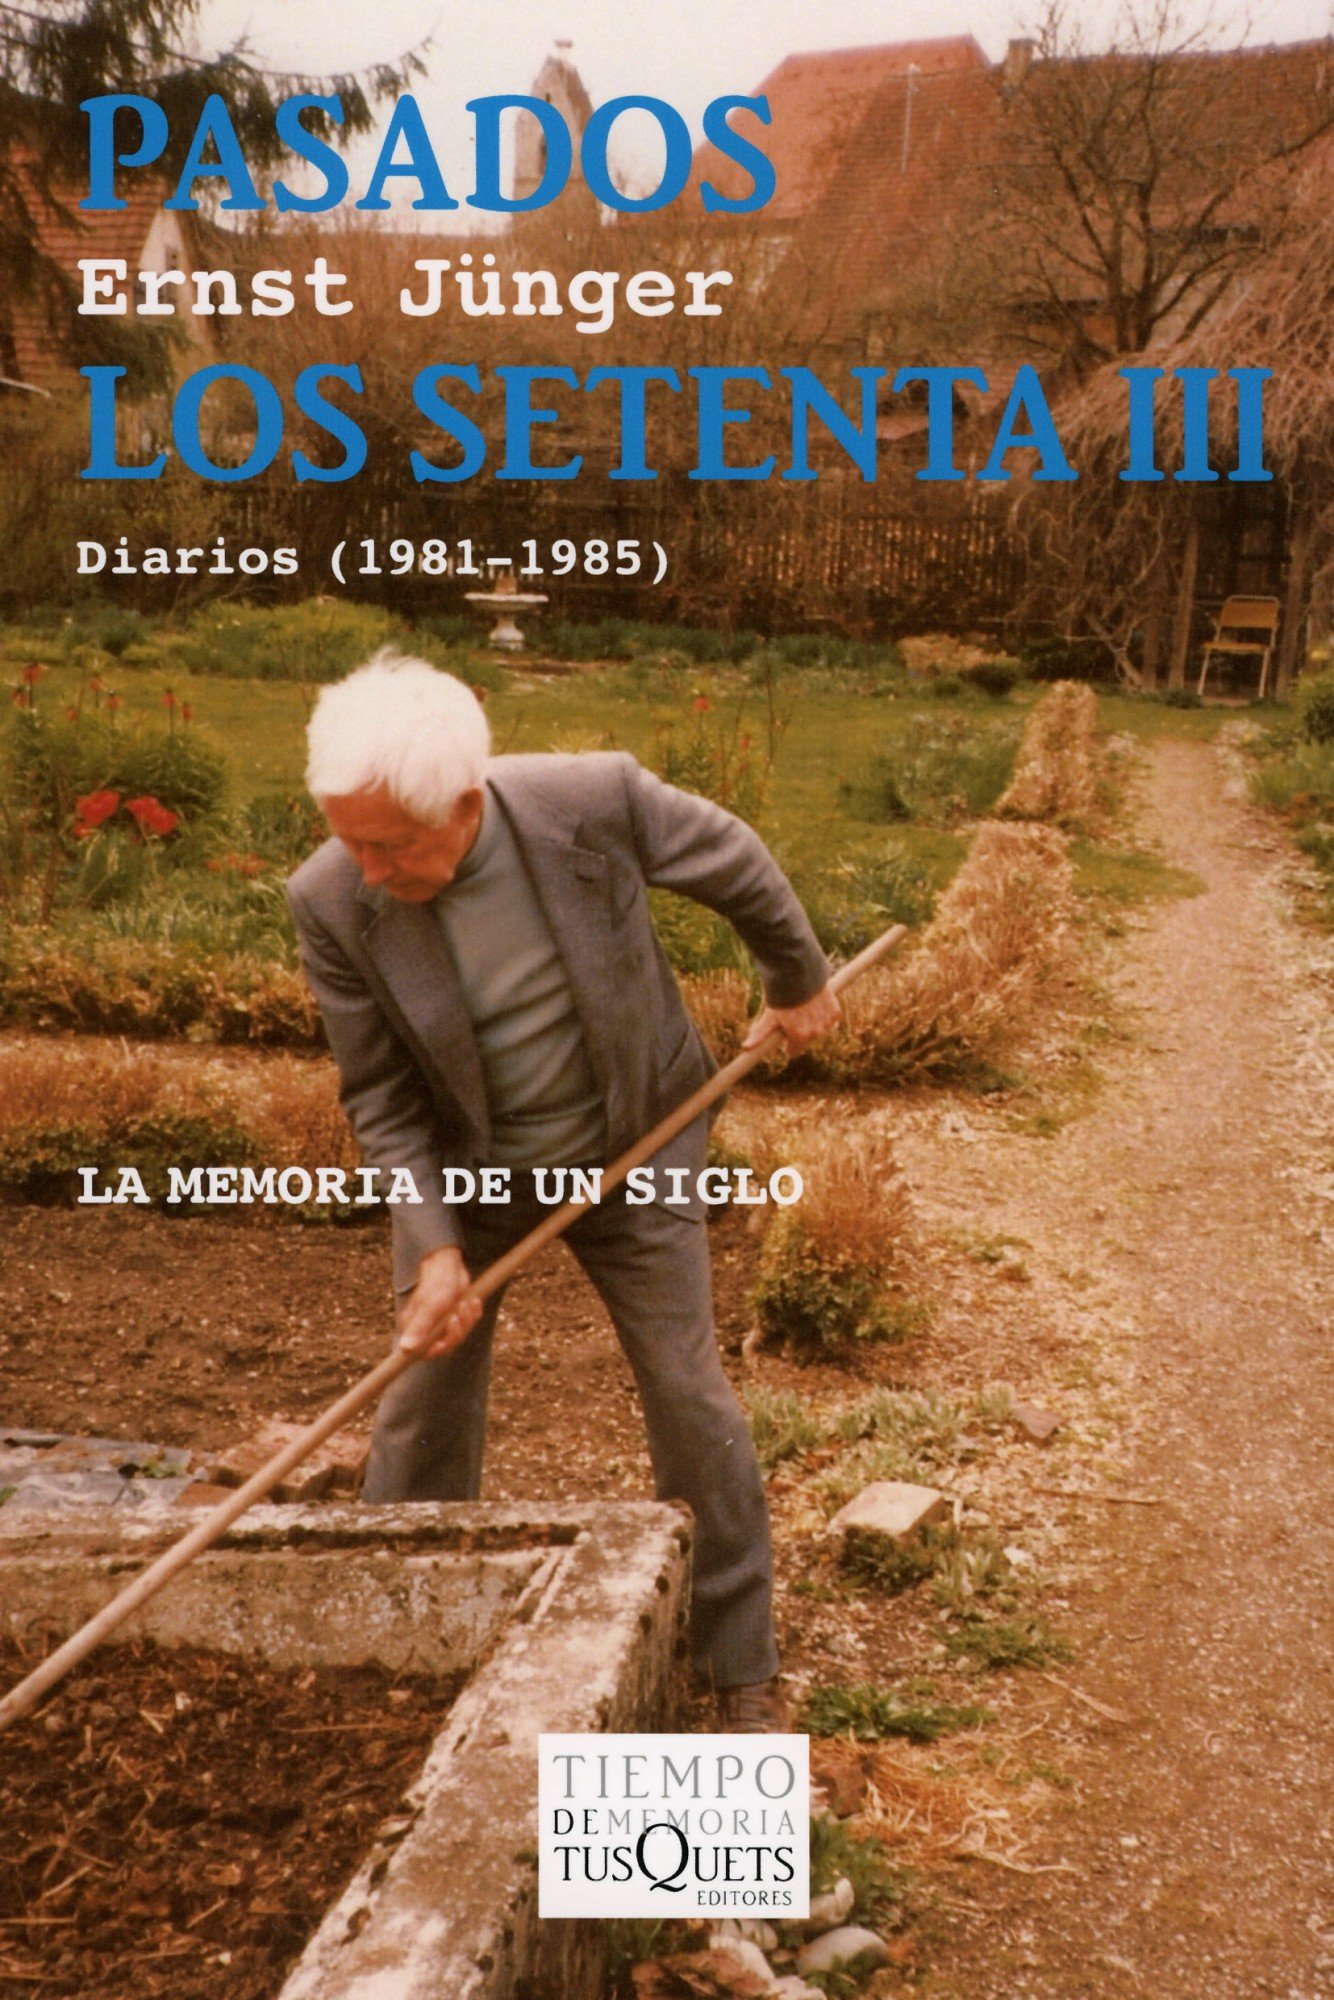 Pasados los setenta III: Diarios (1981-1985) (Spanish Edition): Ernst Jünger: 9788483830048: Amazon.com: Books